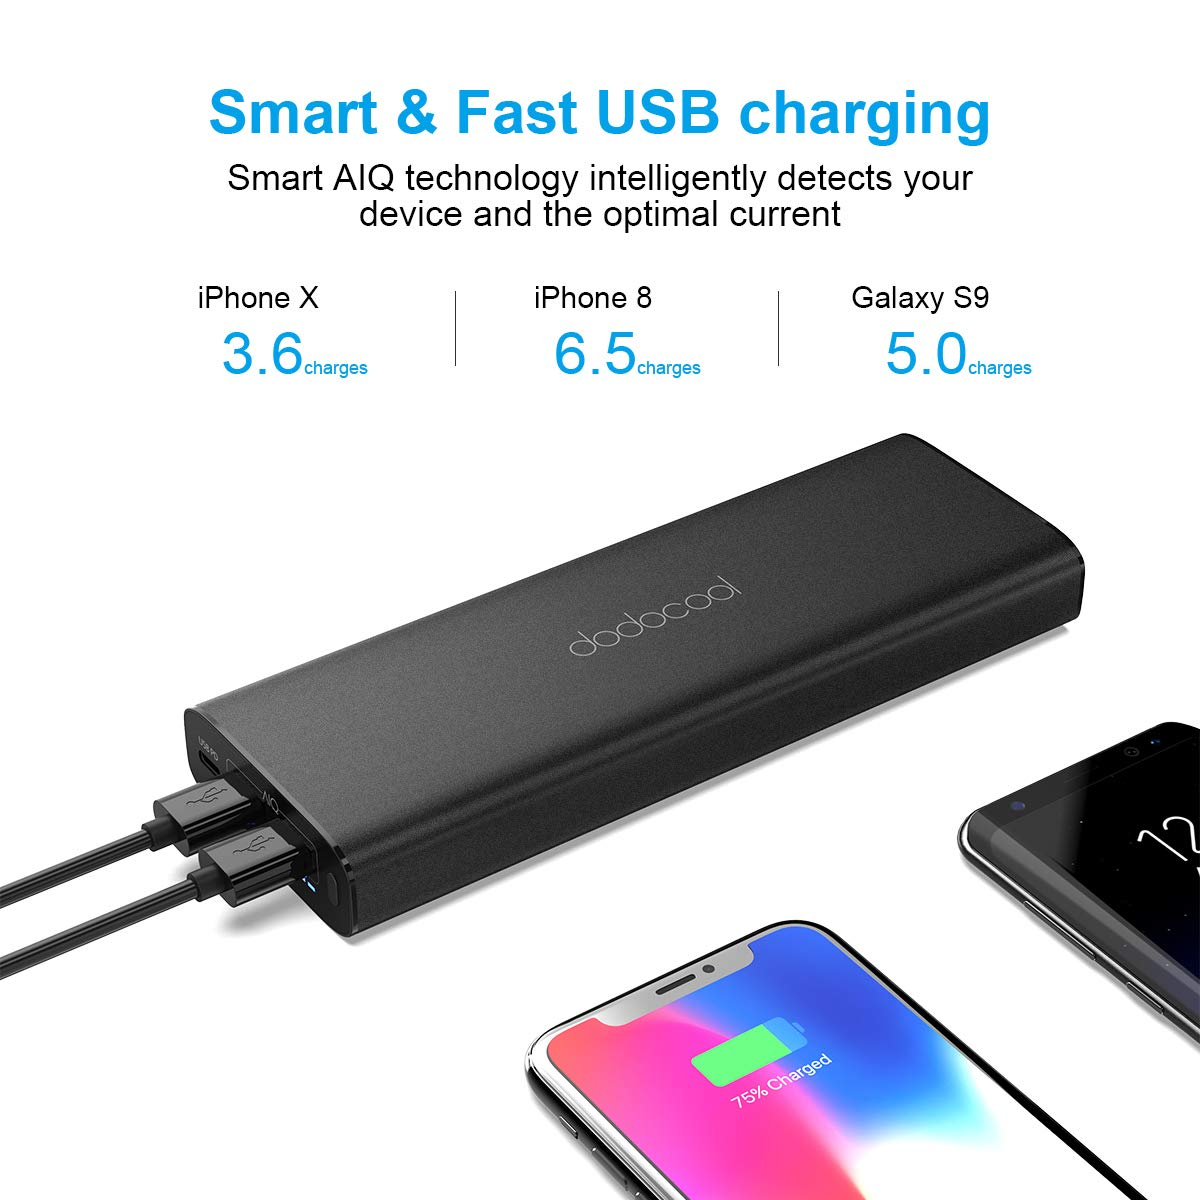 dodocool Power Bank, USB C / Type C PD Power Delivery Power Bank 20100mAh Portable Charger